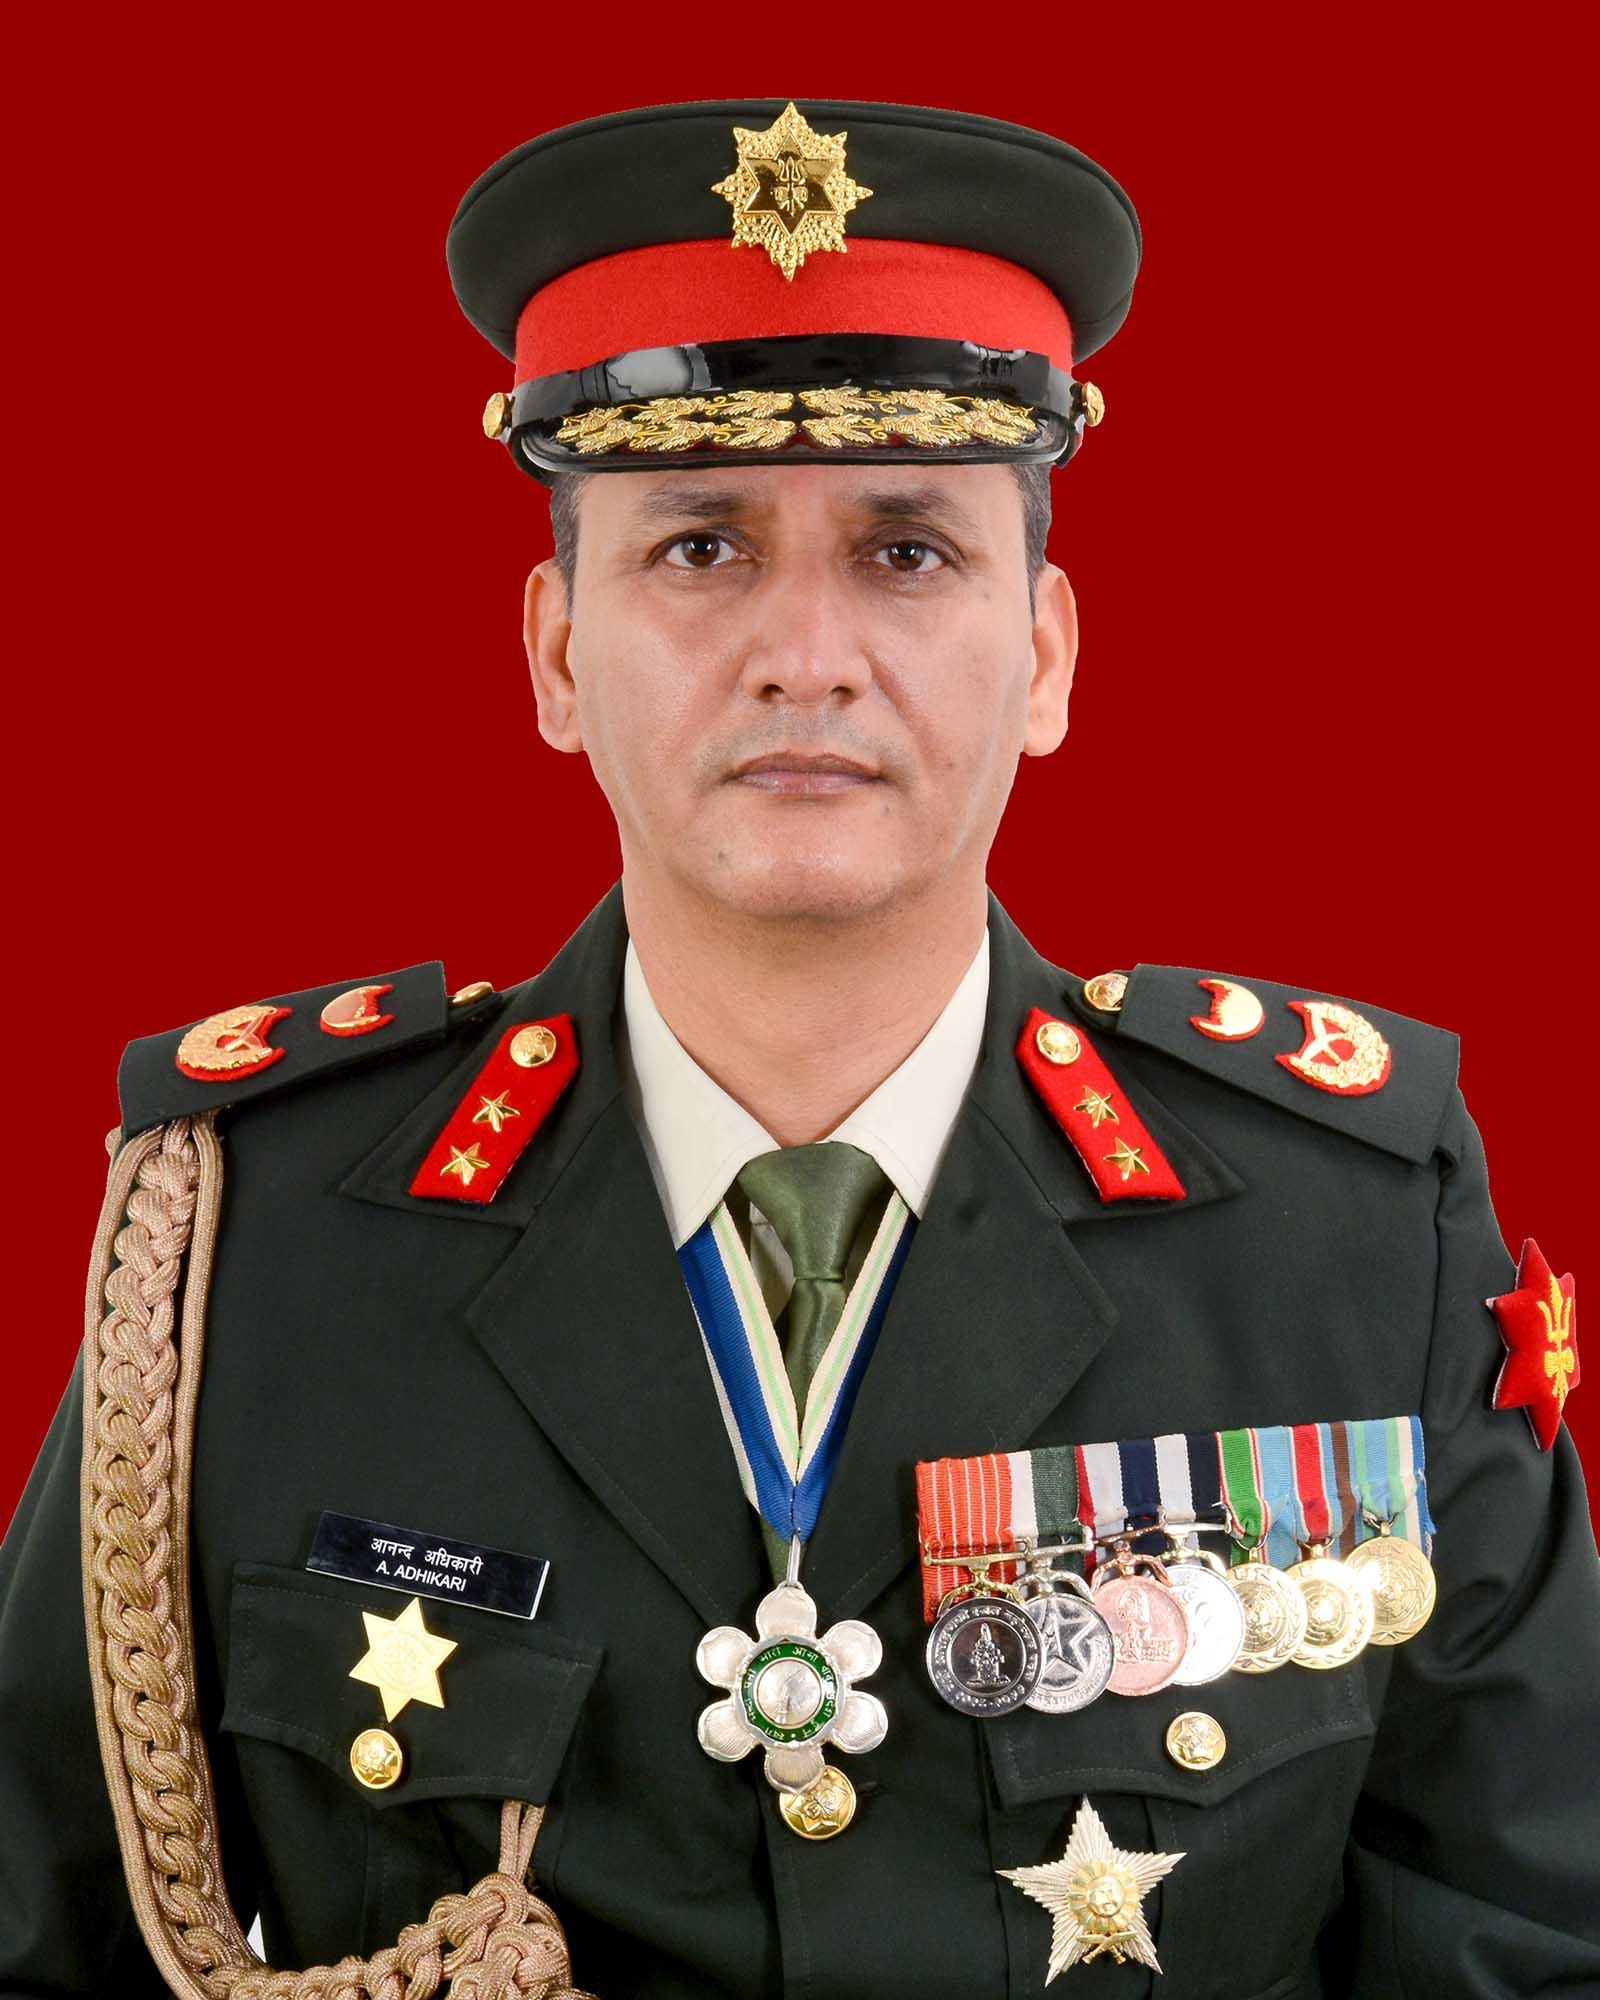 Major General Anand Kumar Adhikari